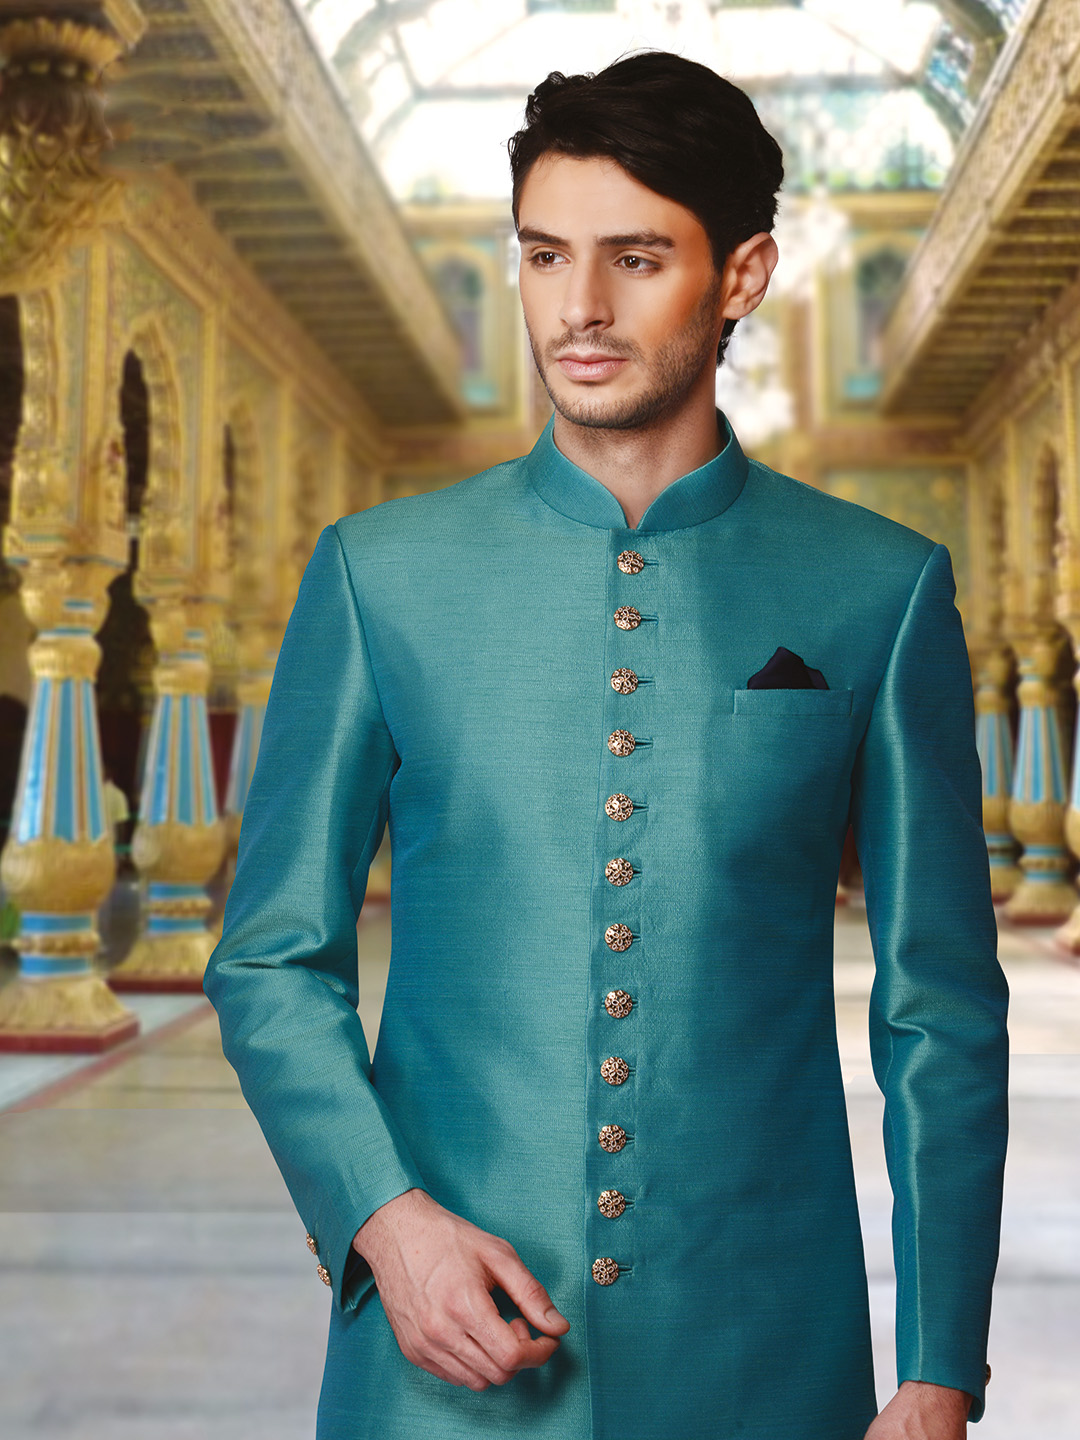 Mens Wedding Sherwani 2018 - Buy Mens Sherwani online, Latest ...